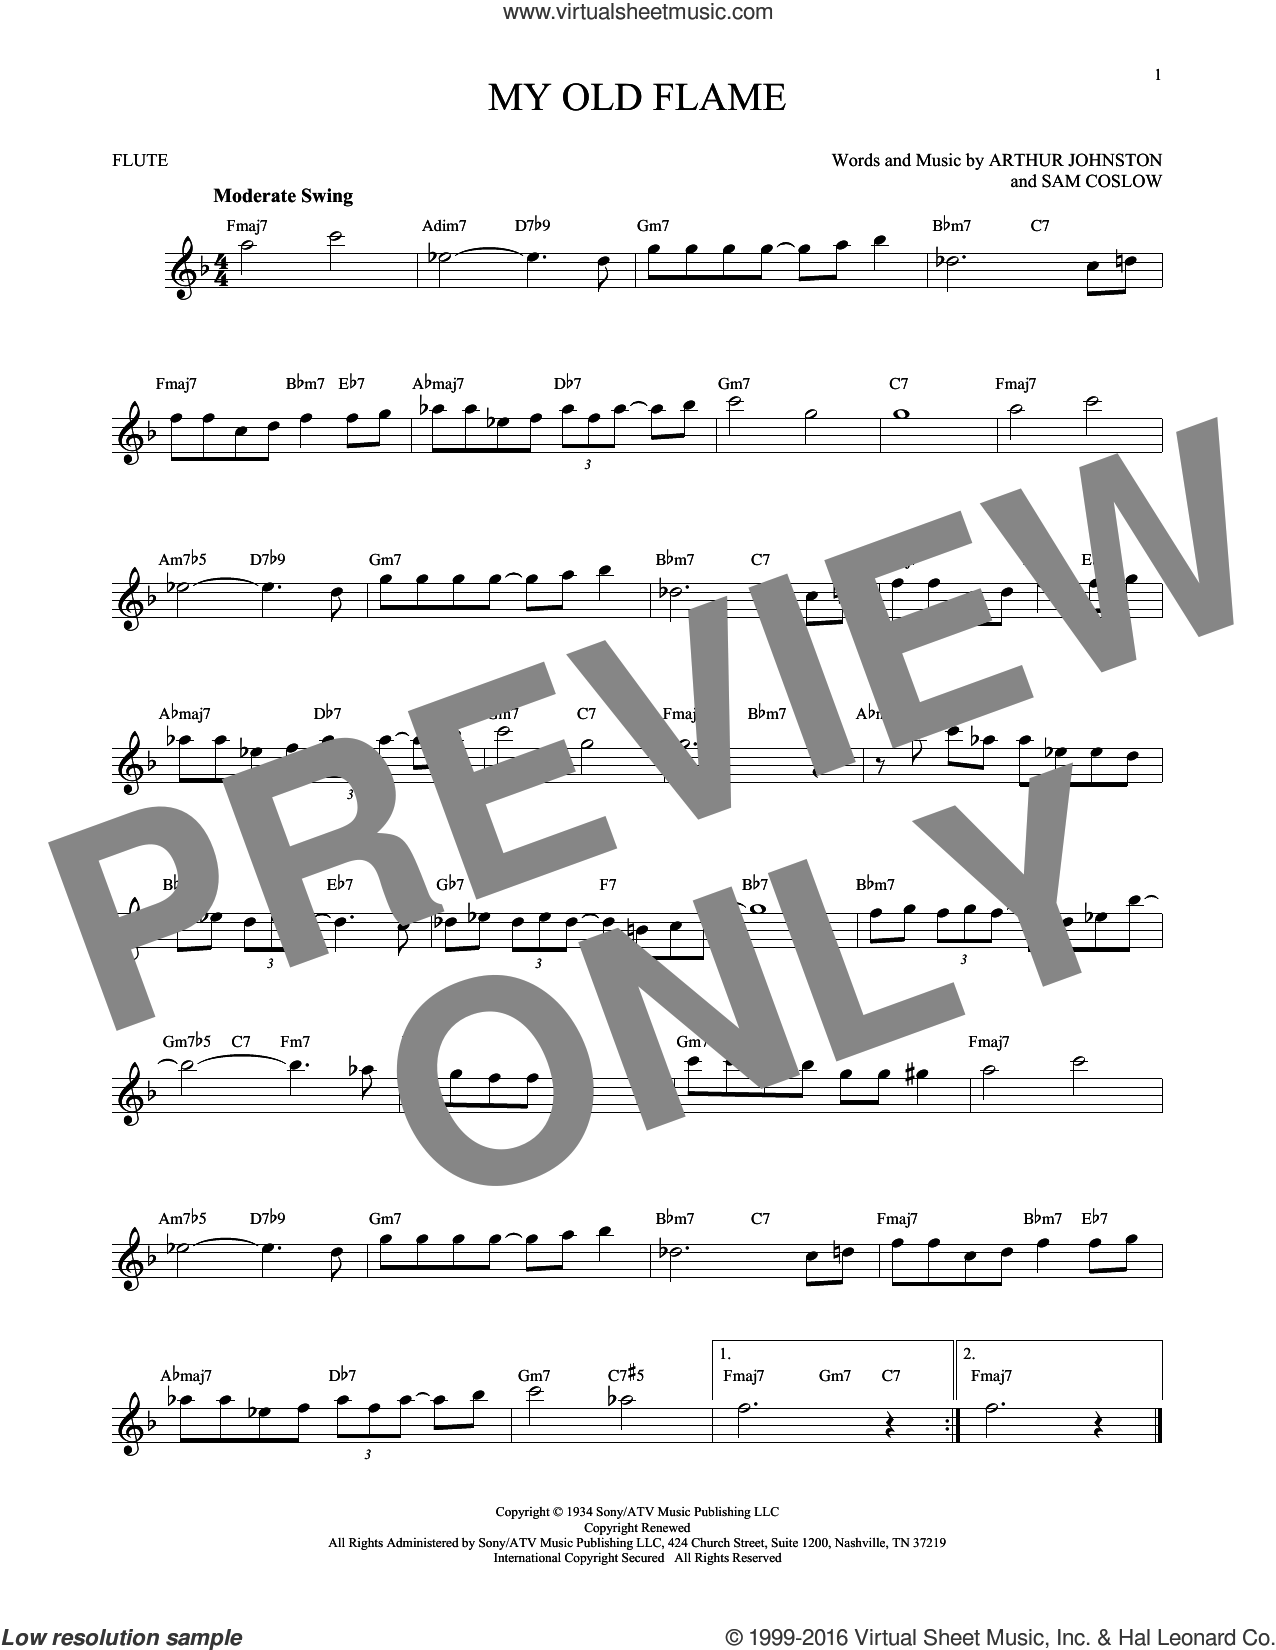 My Old Flame sheet music for flute solo by Arthur Johnston, Peggy Lee and Sam Coslow, intermediate skill level